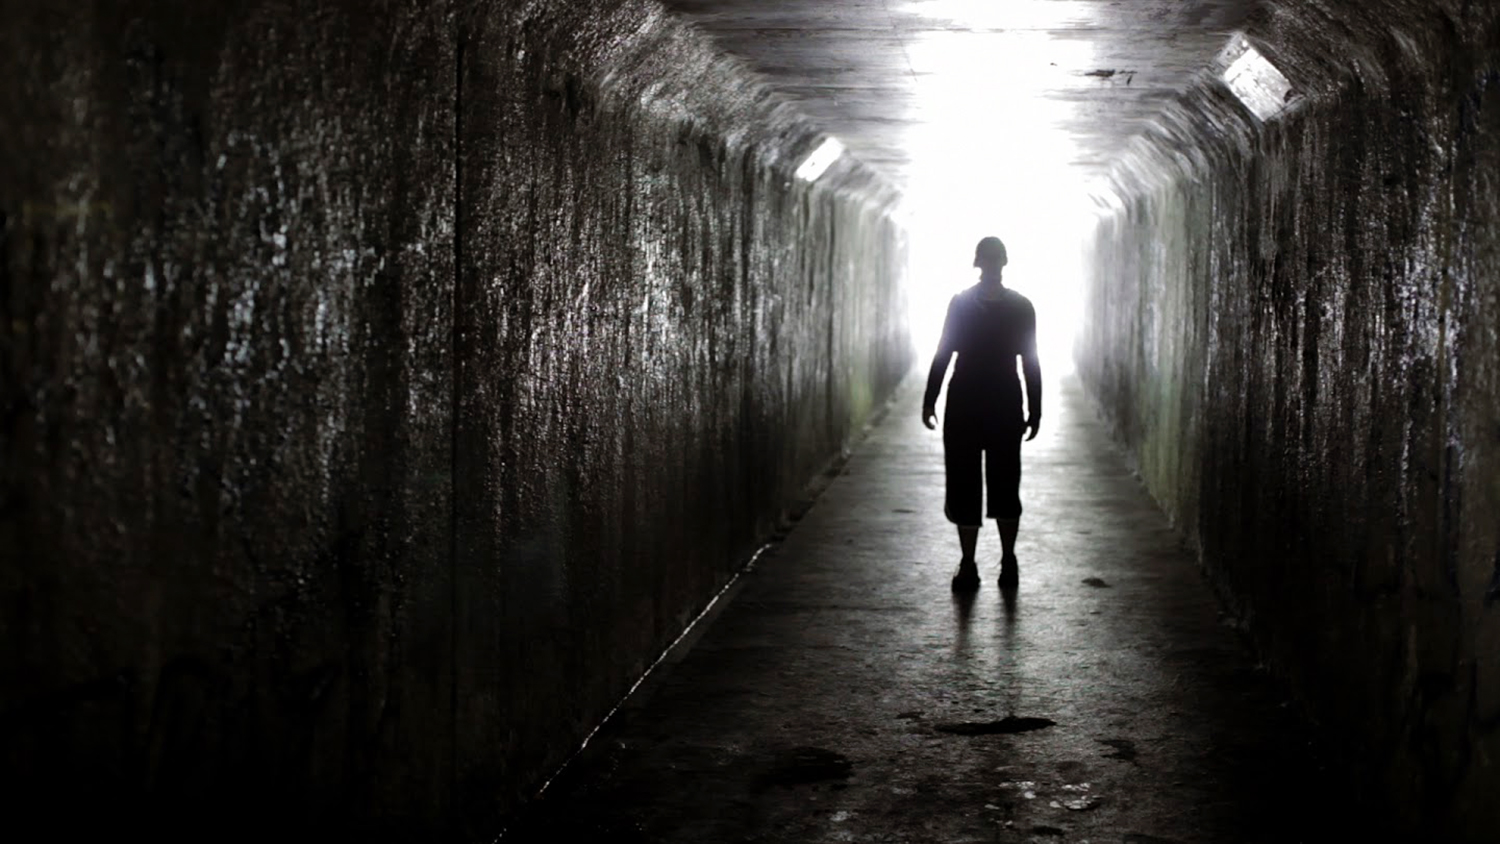 Cosmic Horror Movies - Absentia, the tunnel